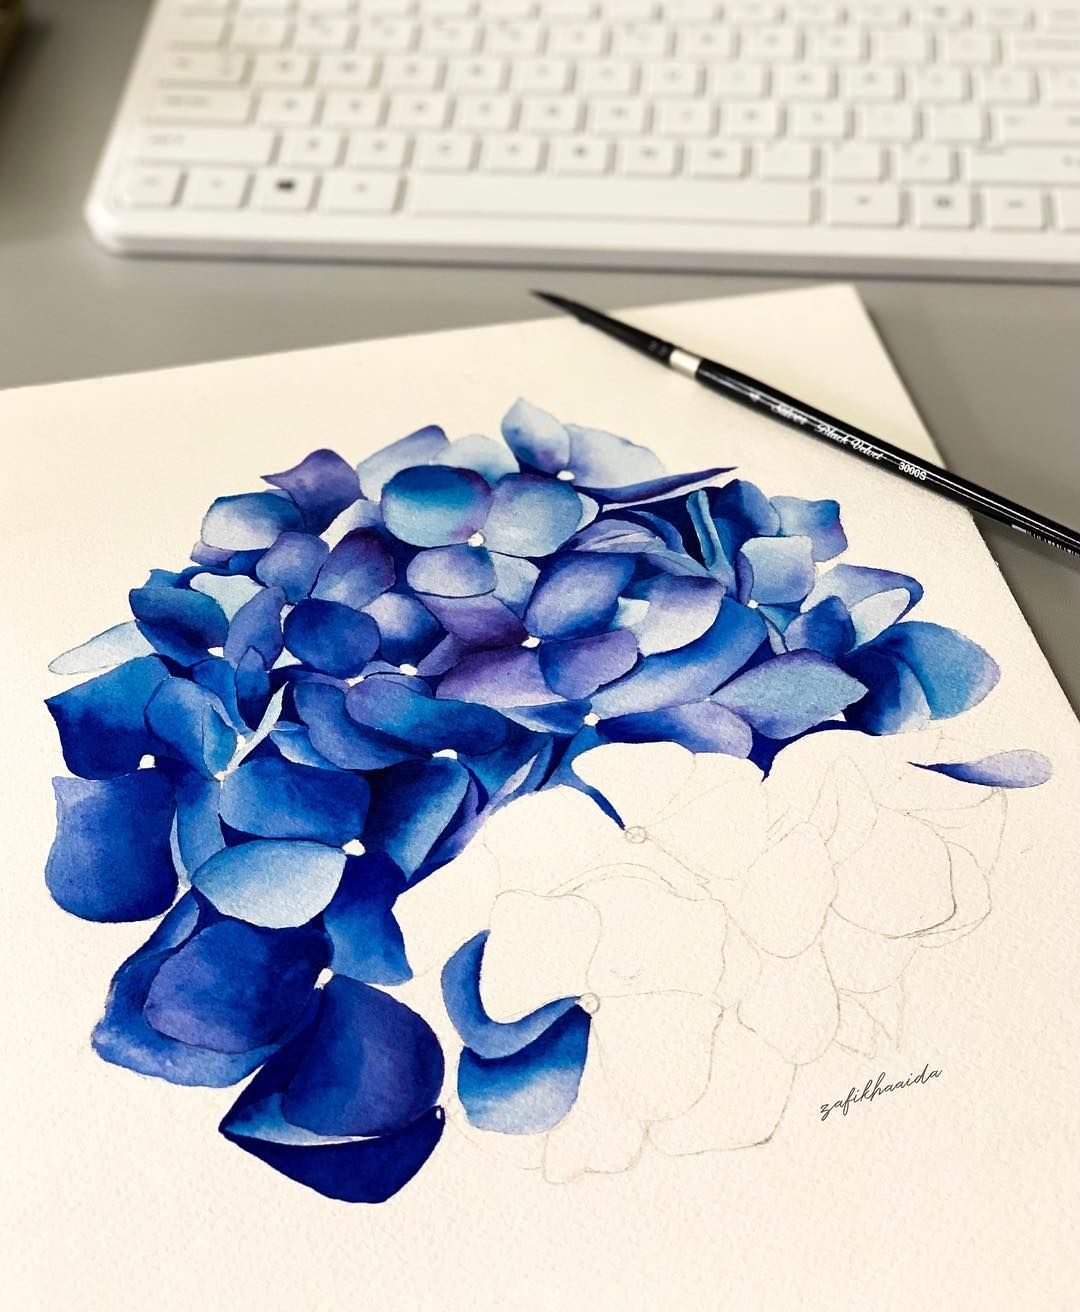 Zafikha Aida On Instagram First Attempt Painting Realistic Hydrangeas After 1 Year And 5 Months P Hydrangea Painting Art Tutorials Watercolor Flower Painting